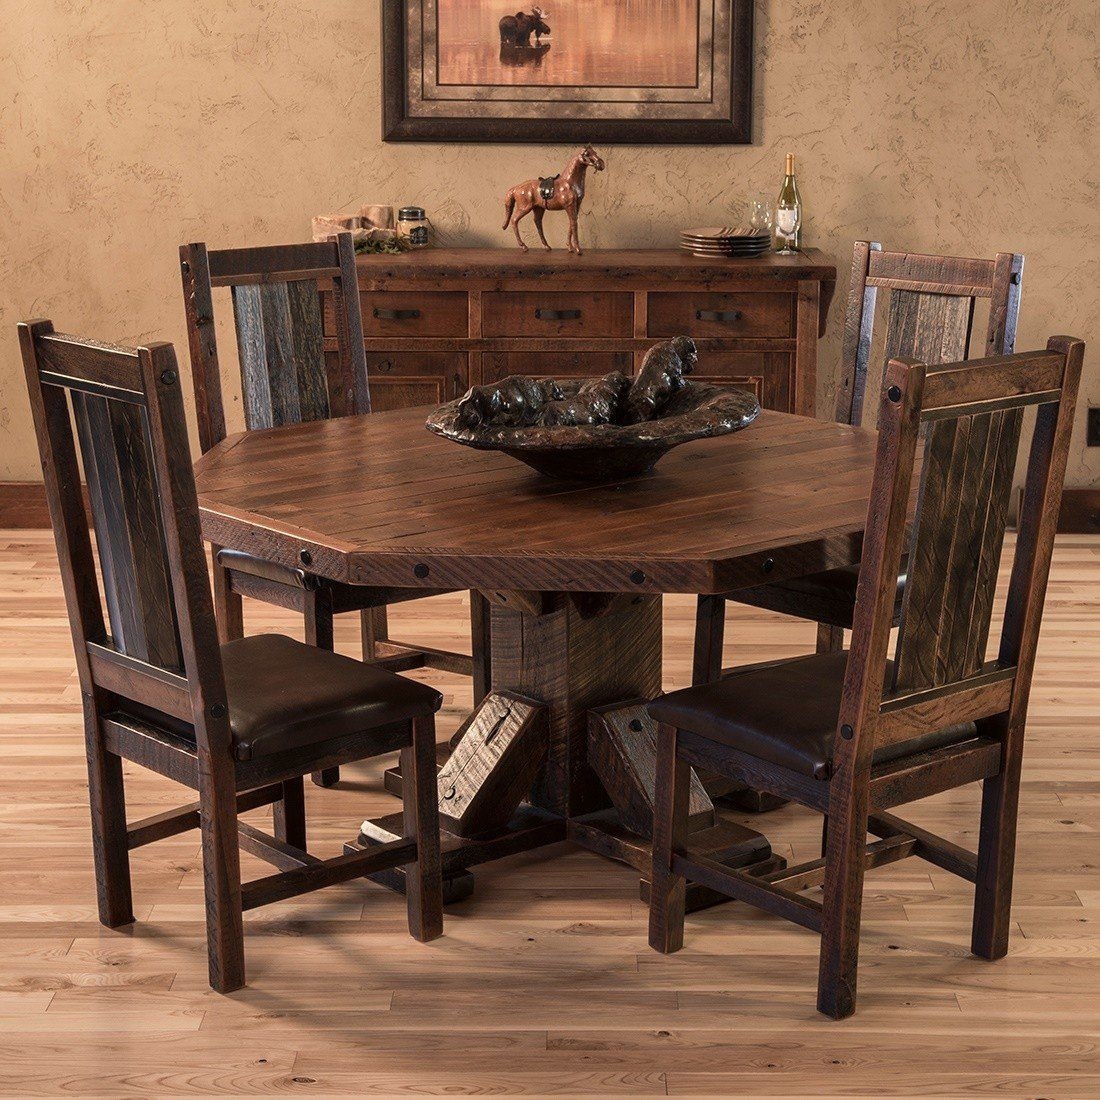 Rocky Creek Big Beam Octagon Dining Table Dining Table Rustic Round Dining Table Octagon Dining Table